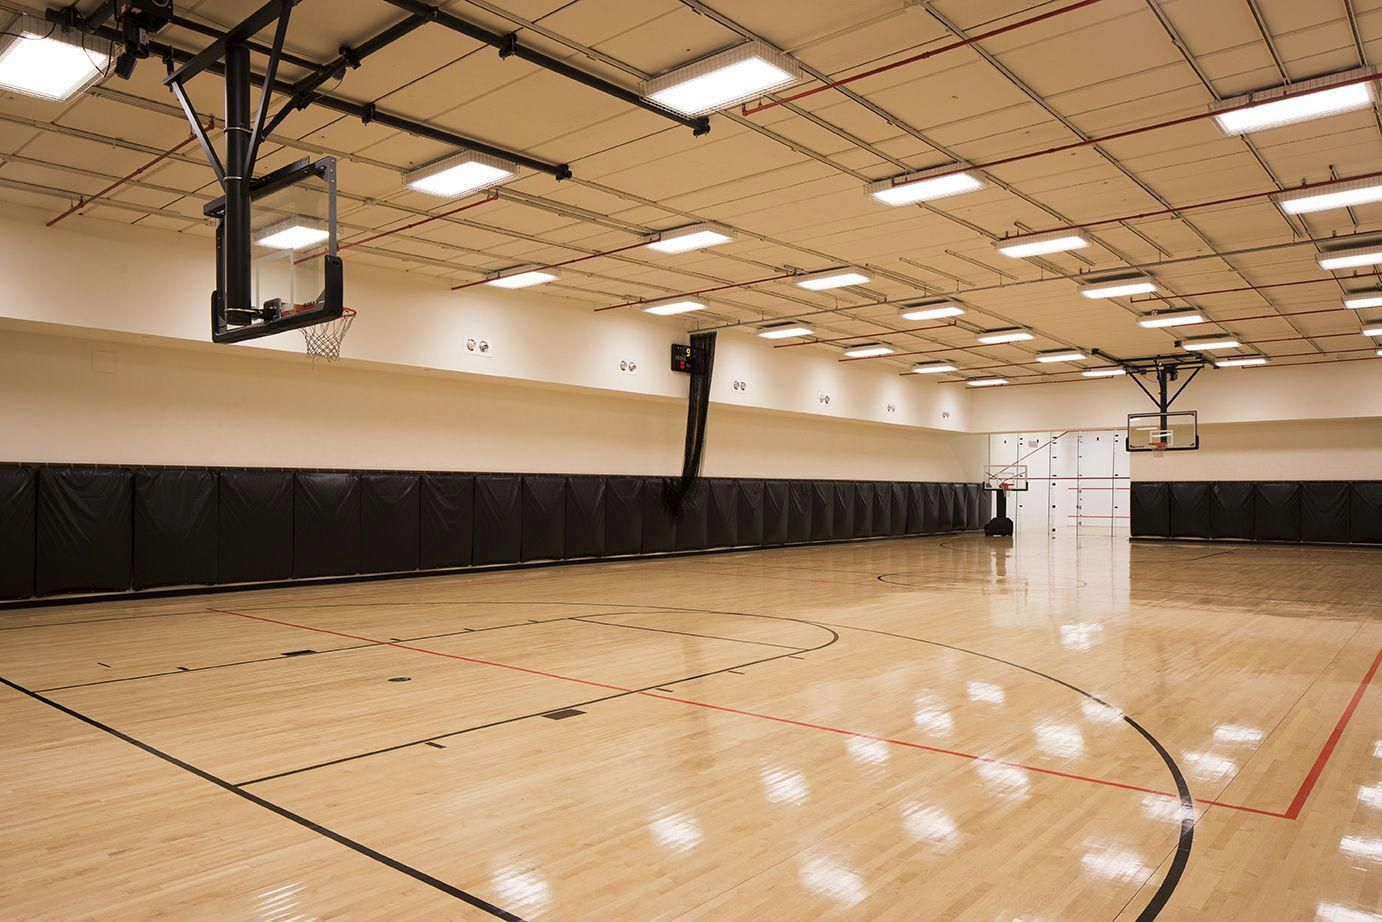 Full Size Indoor Basketball Court Indoorbasketballcourt Basketballshortsgirls Indoor Basketball Court Indoor Basketball Home Basketball Court